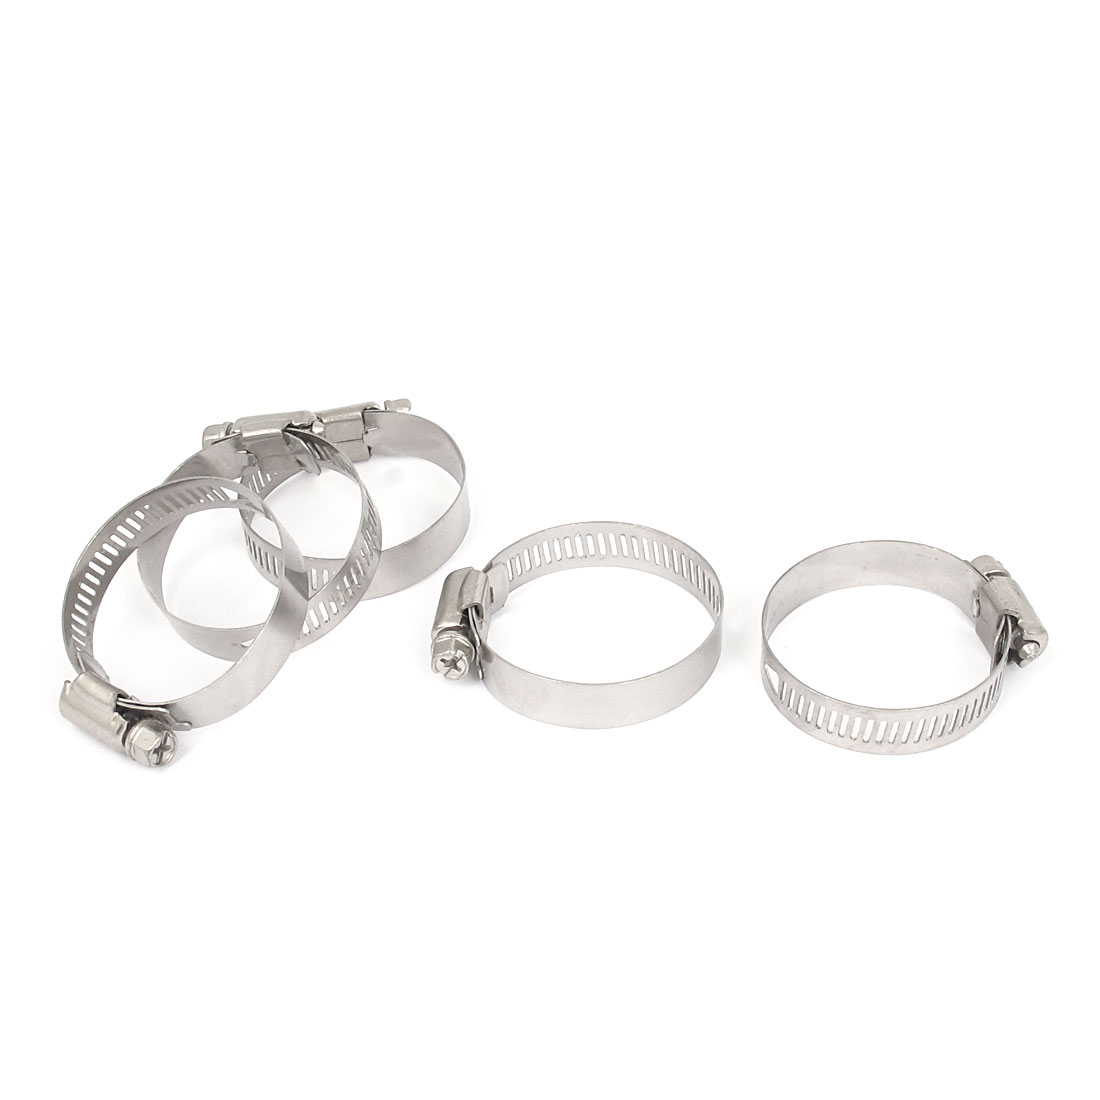 35mm to 51mm Range 13mm Band Width Stainless Steel Hose Pipe Clamp Hoop 5pcs